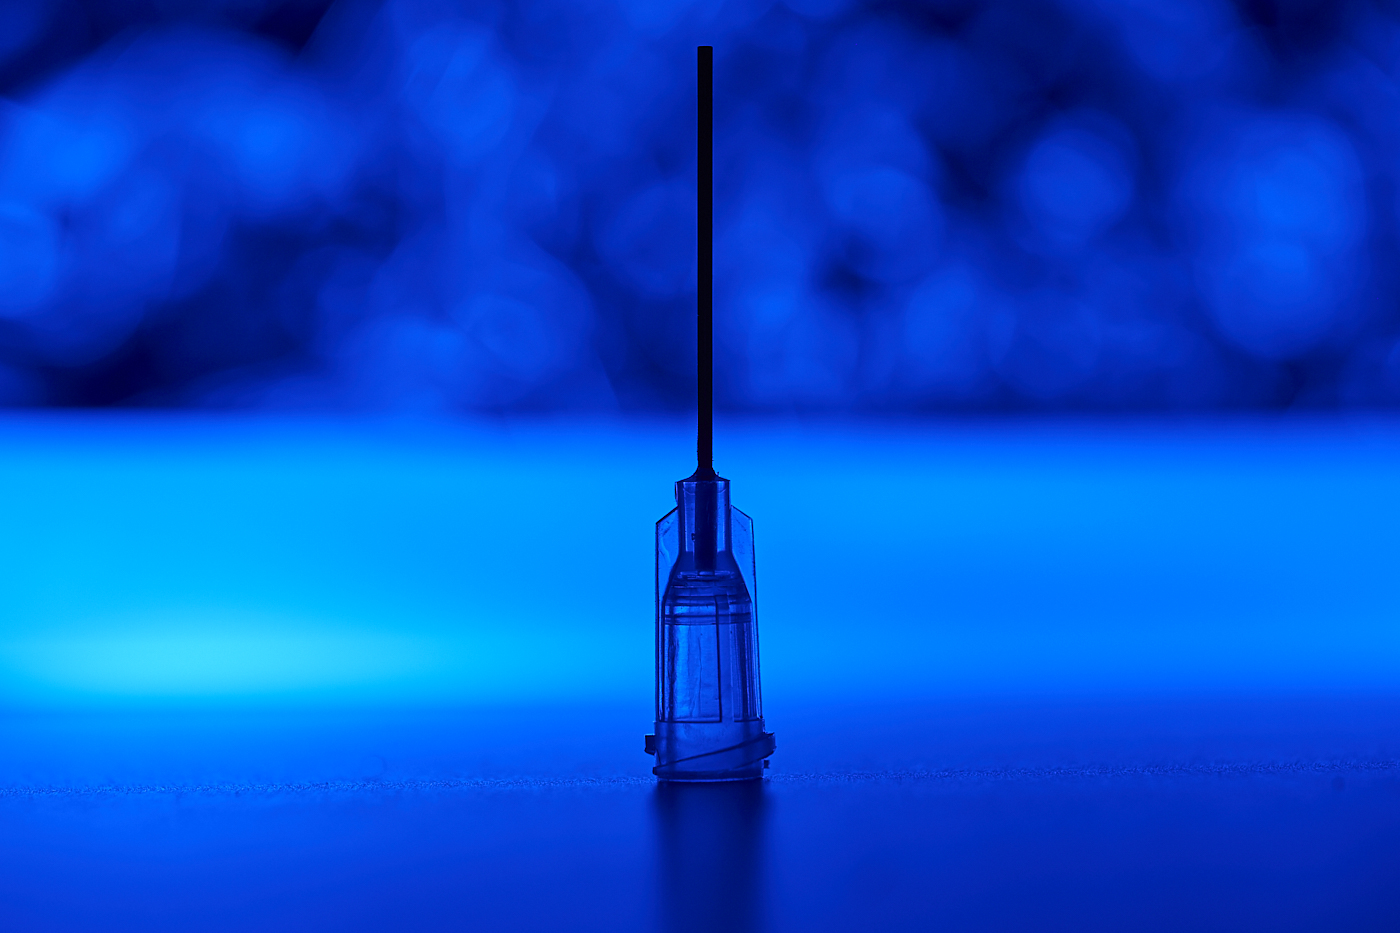 blue medical syringe